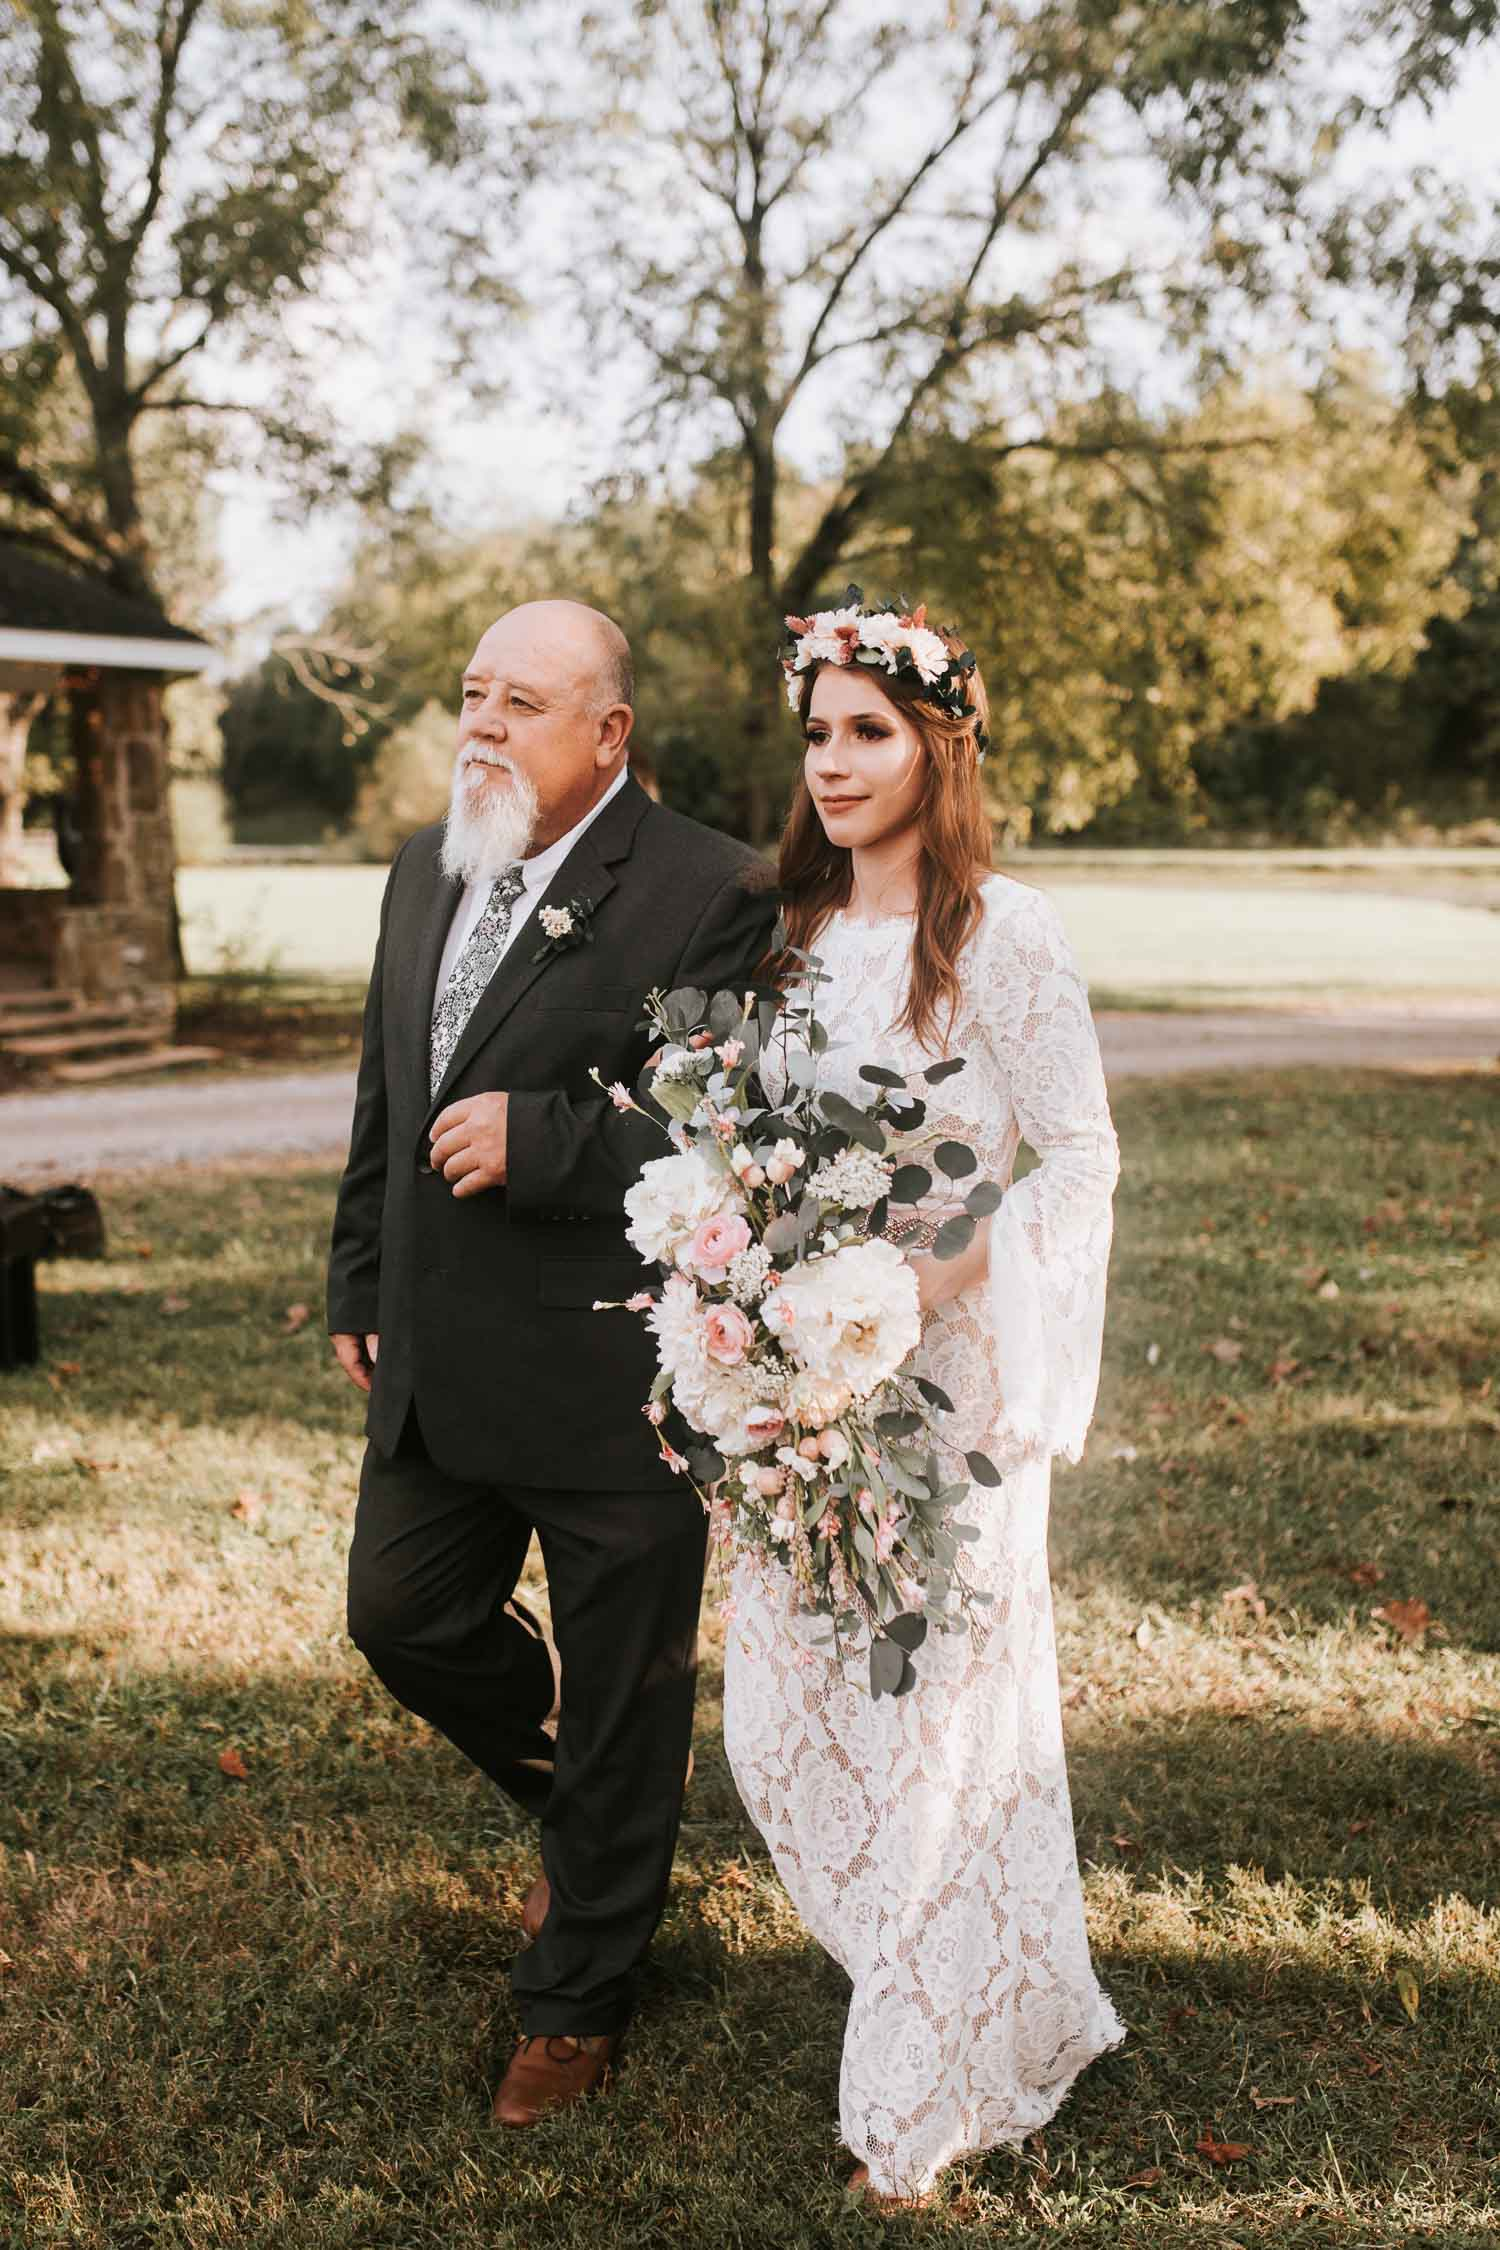 NashvilleWeddingPhotographer (12 of 44).jpg